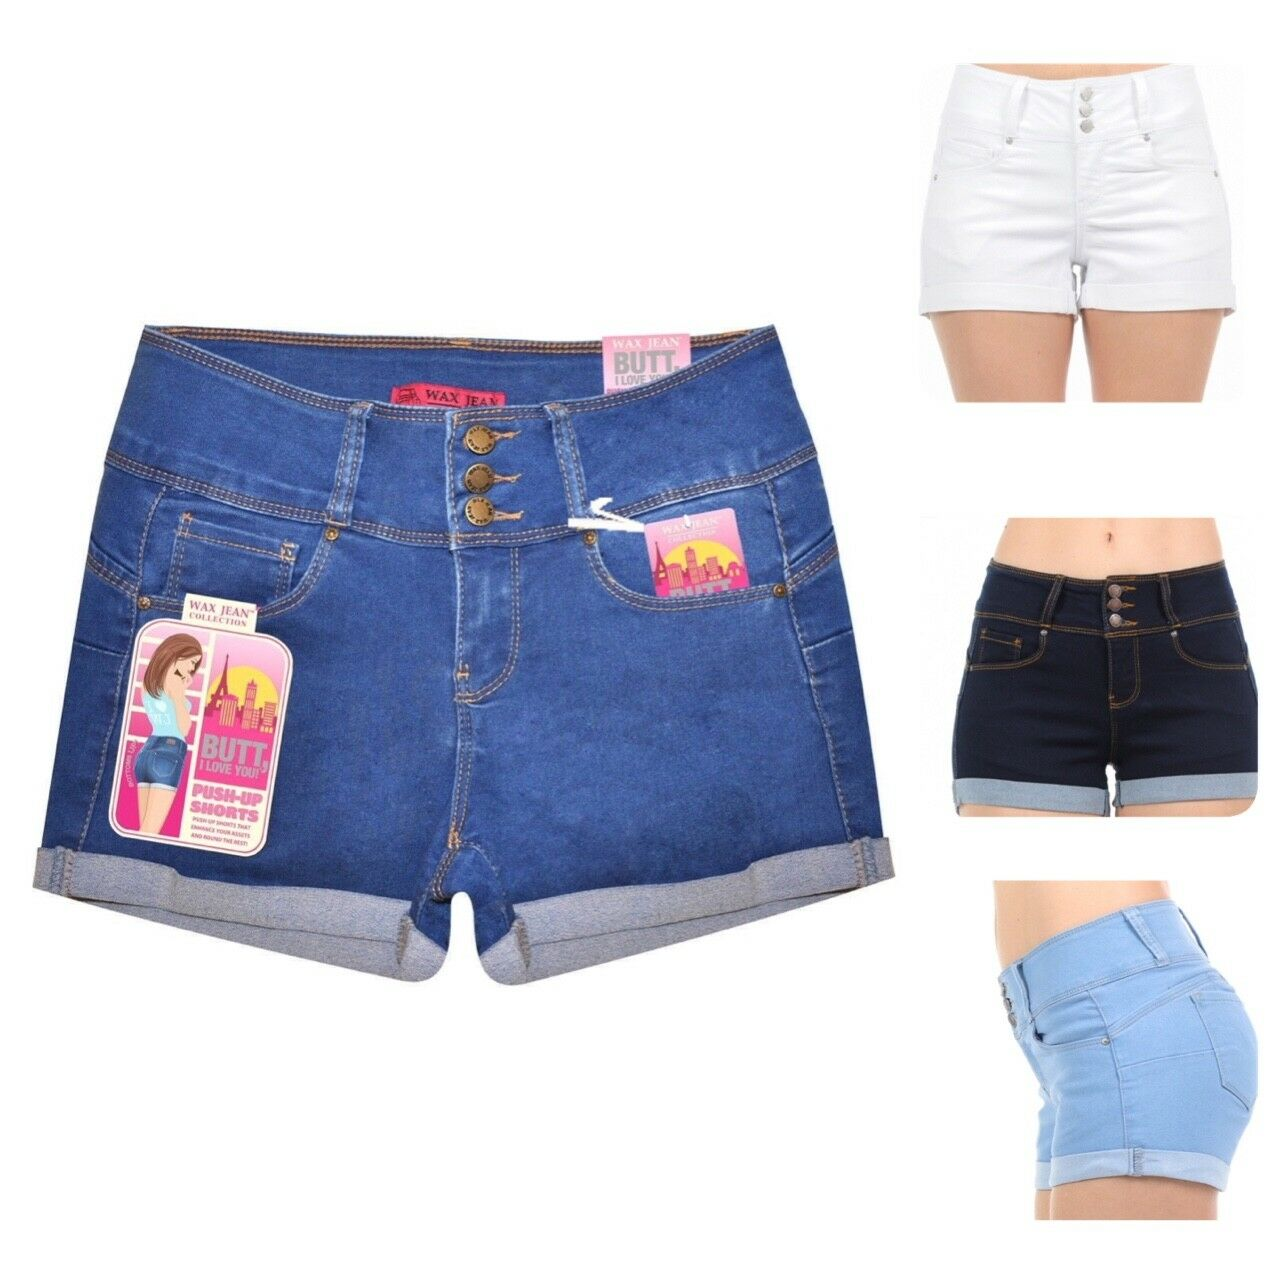 Wax Jeans Women's Juniors Cuffed Hem Denim Shorts